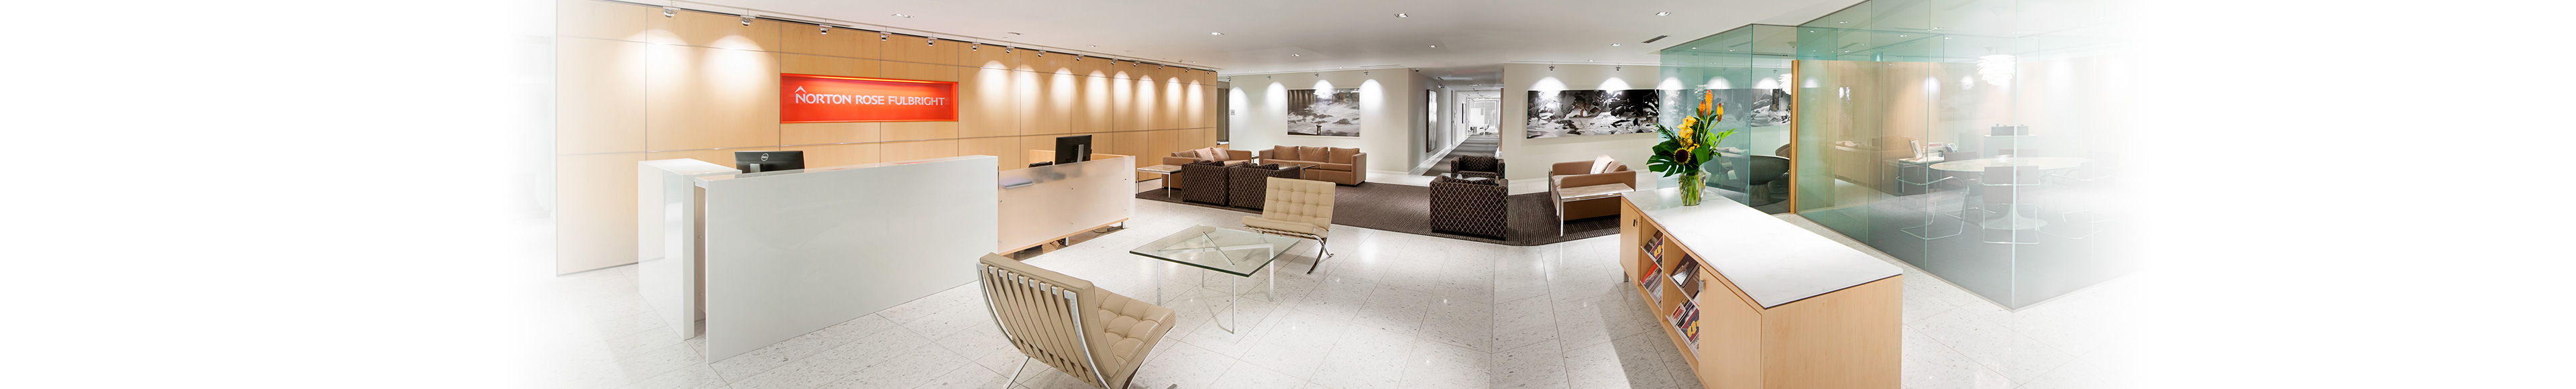 Montreal office reception